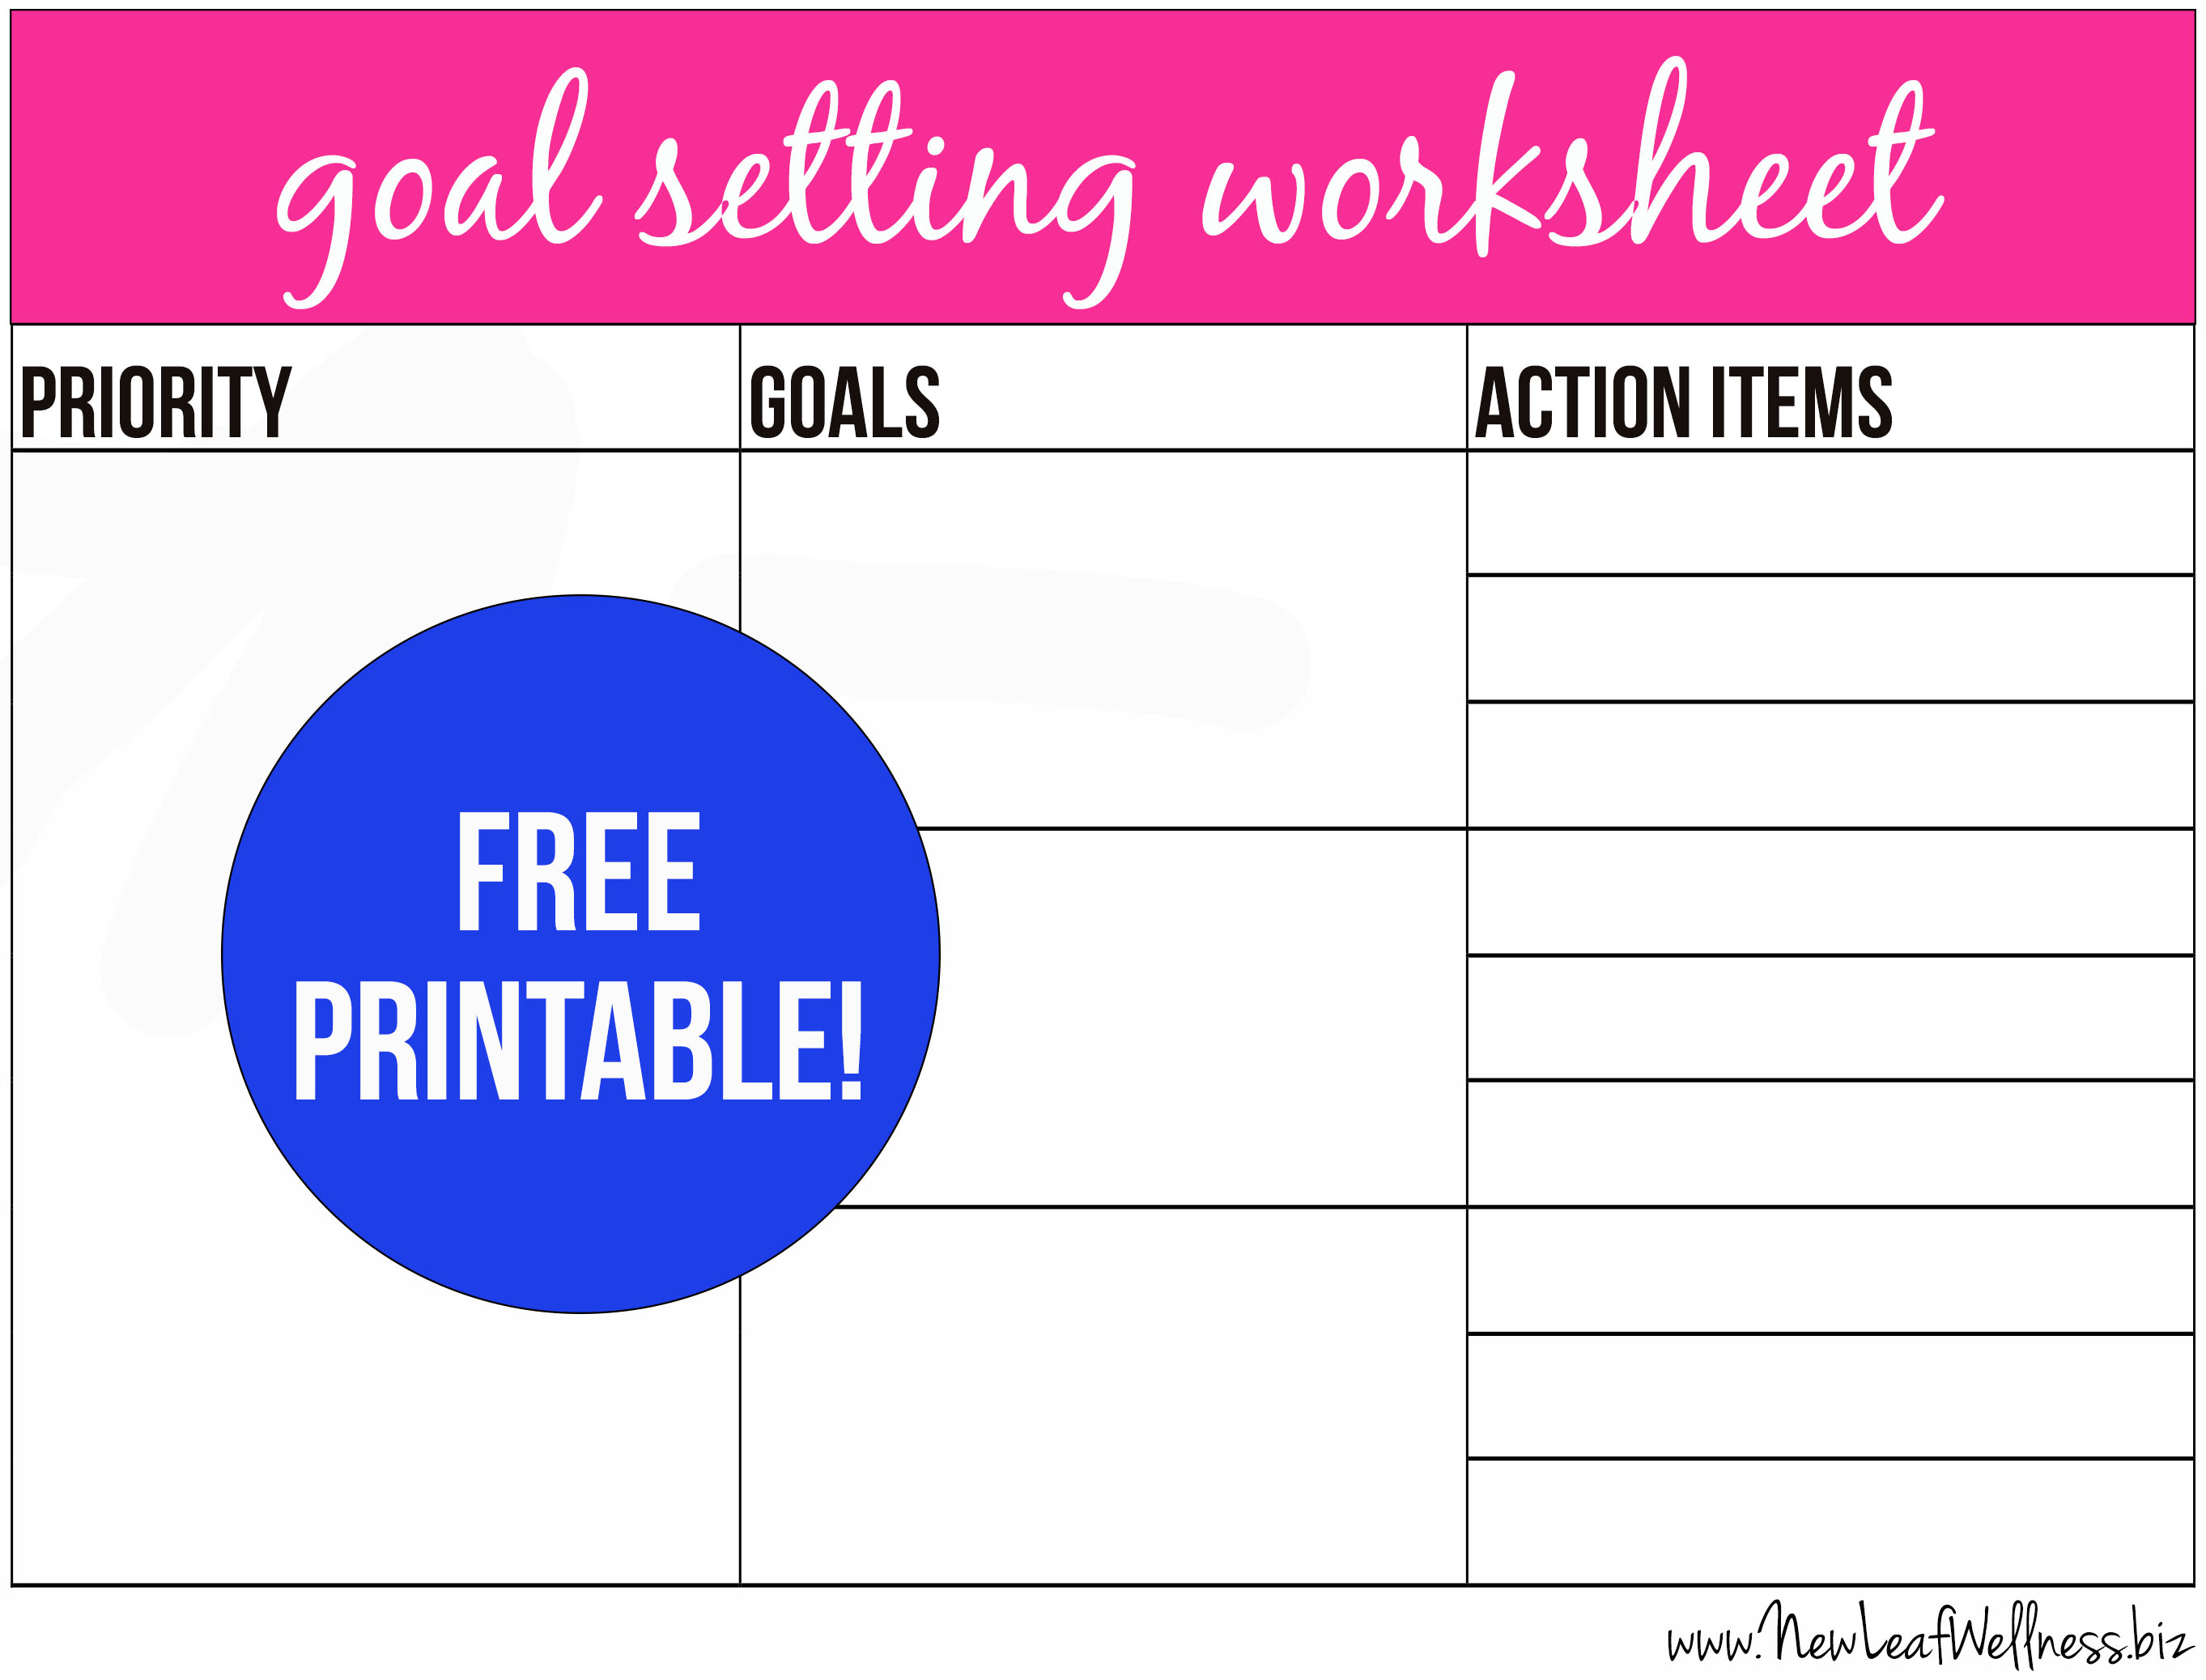 Free printable goal setting worksheet and instructions | The Family ...